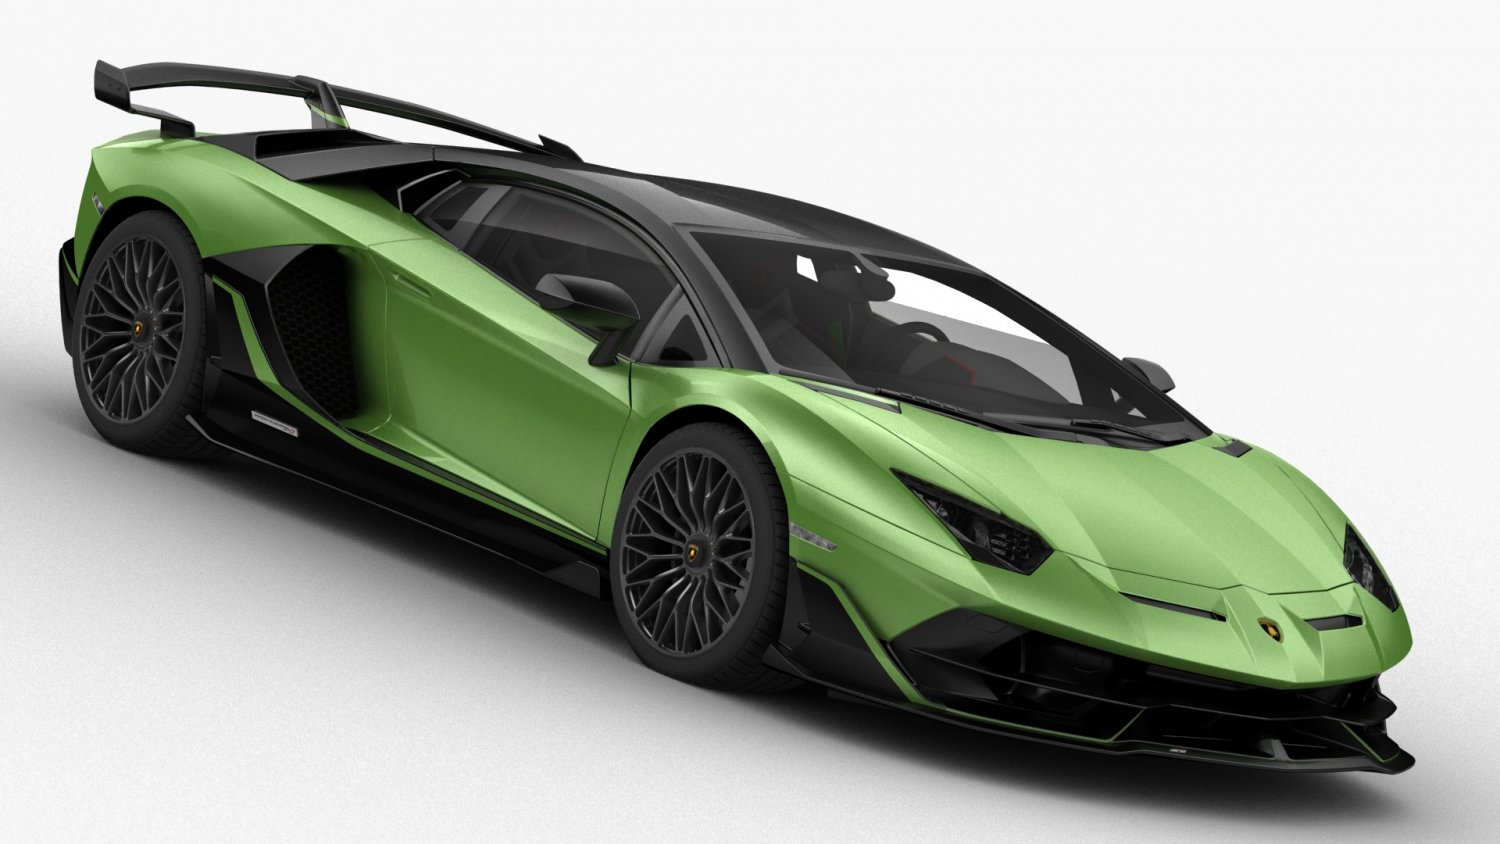 Lamborghini Aventador Svj 2019 Hq Interior 3d Model In Sport Cars